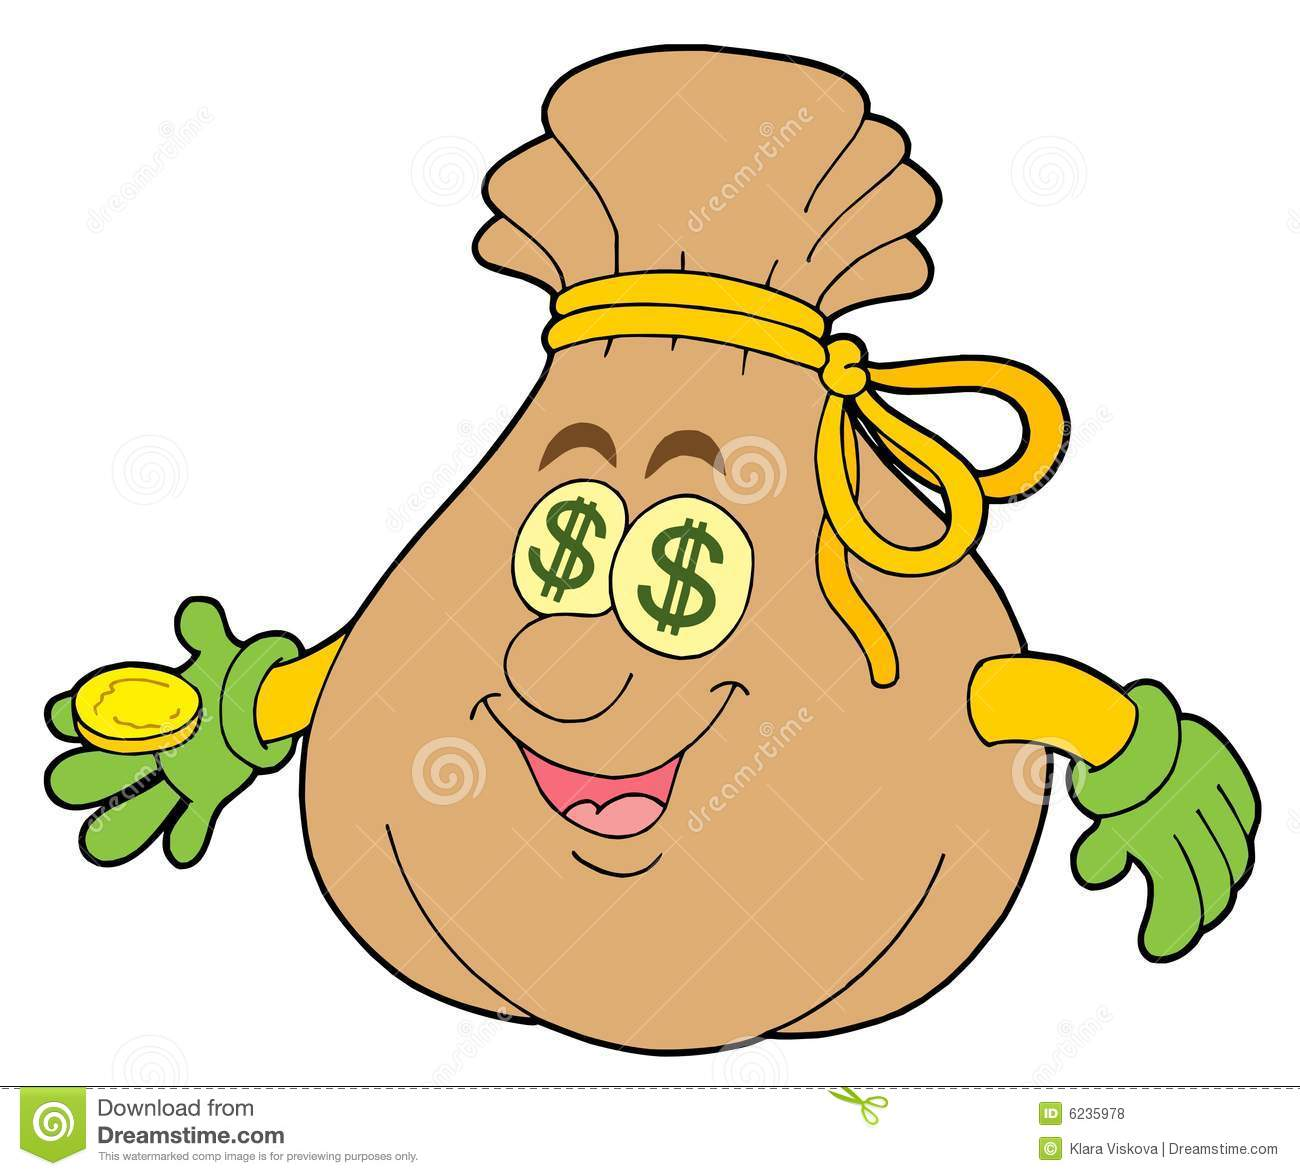 Cute money sack stock vector. Illustration of sale, dollar ...